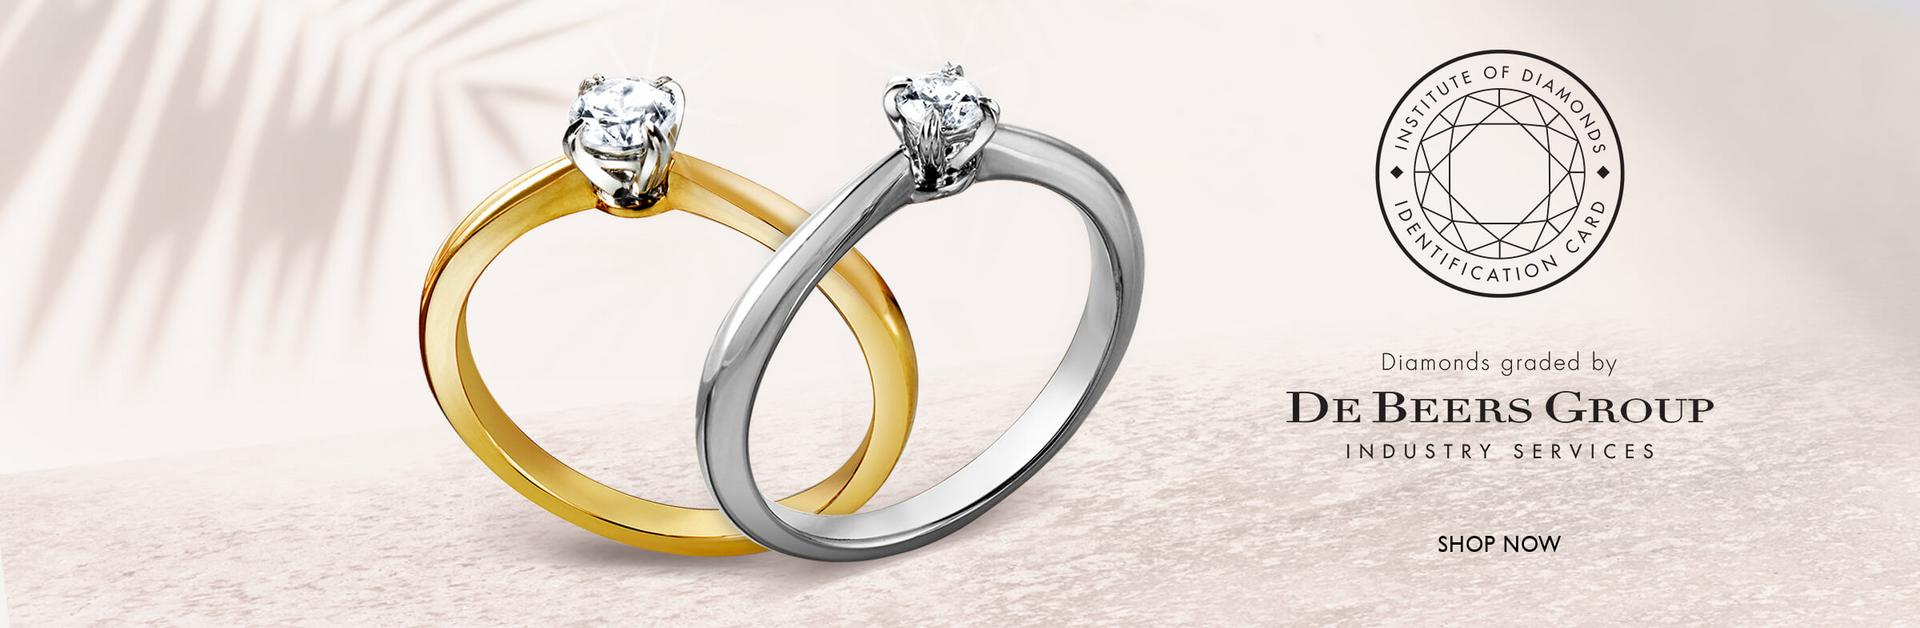 The De Beers Collection at Ernest Jones